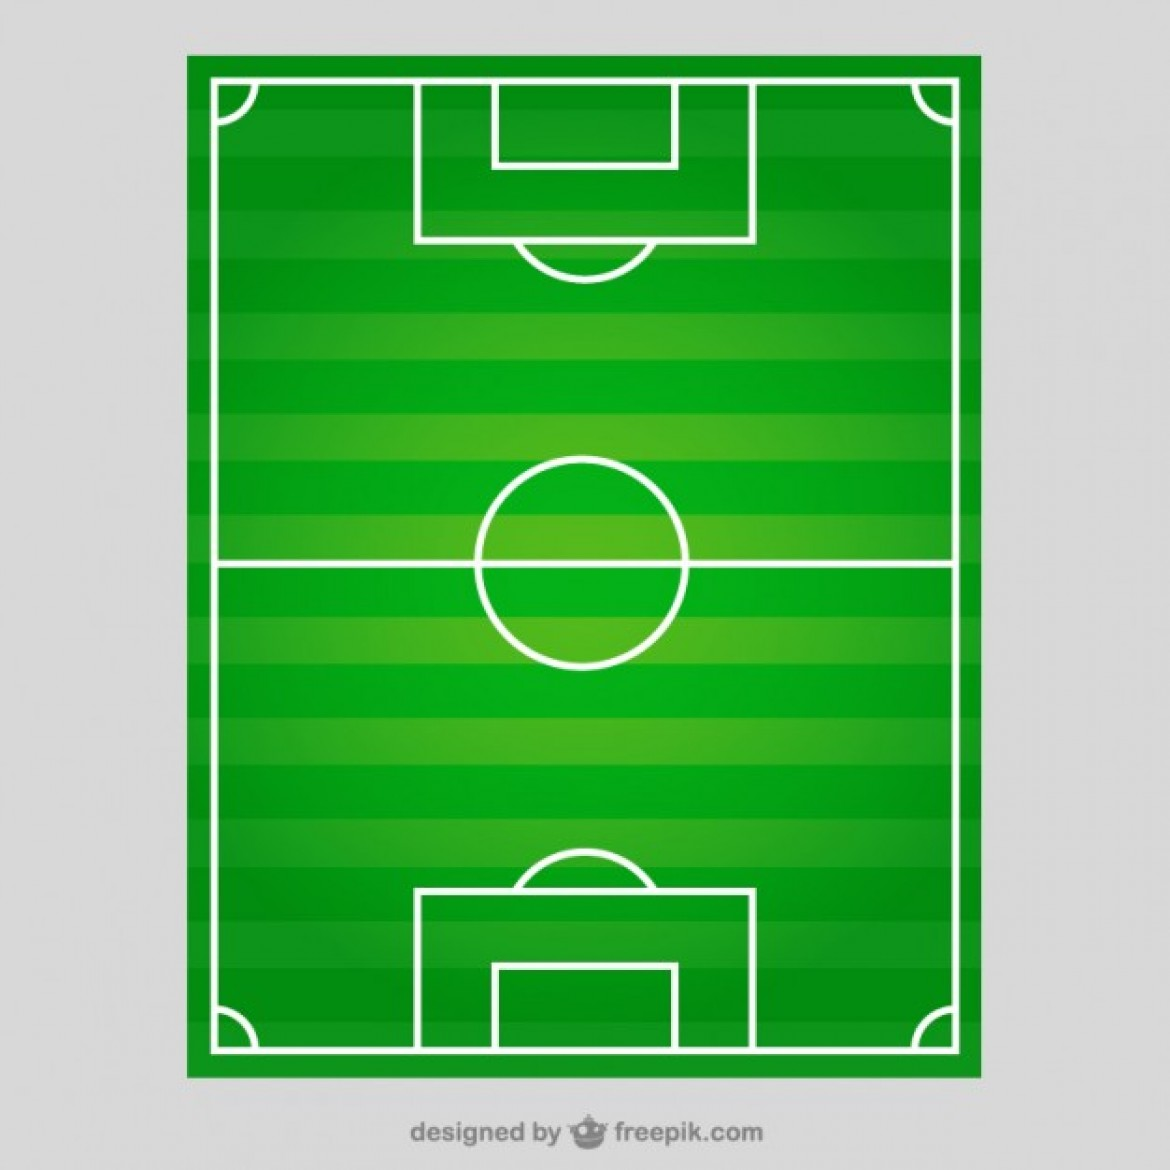 Football field pictures printable ASTRO SOFTWARE - Amateur Astrophotography